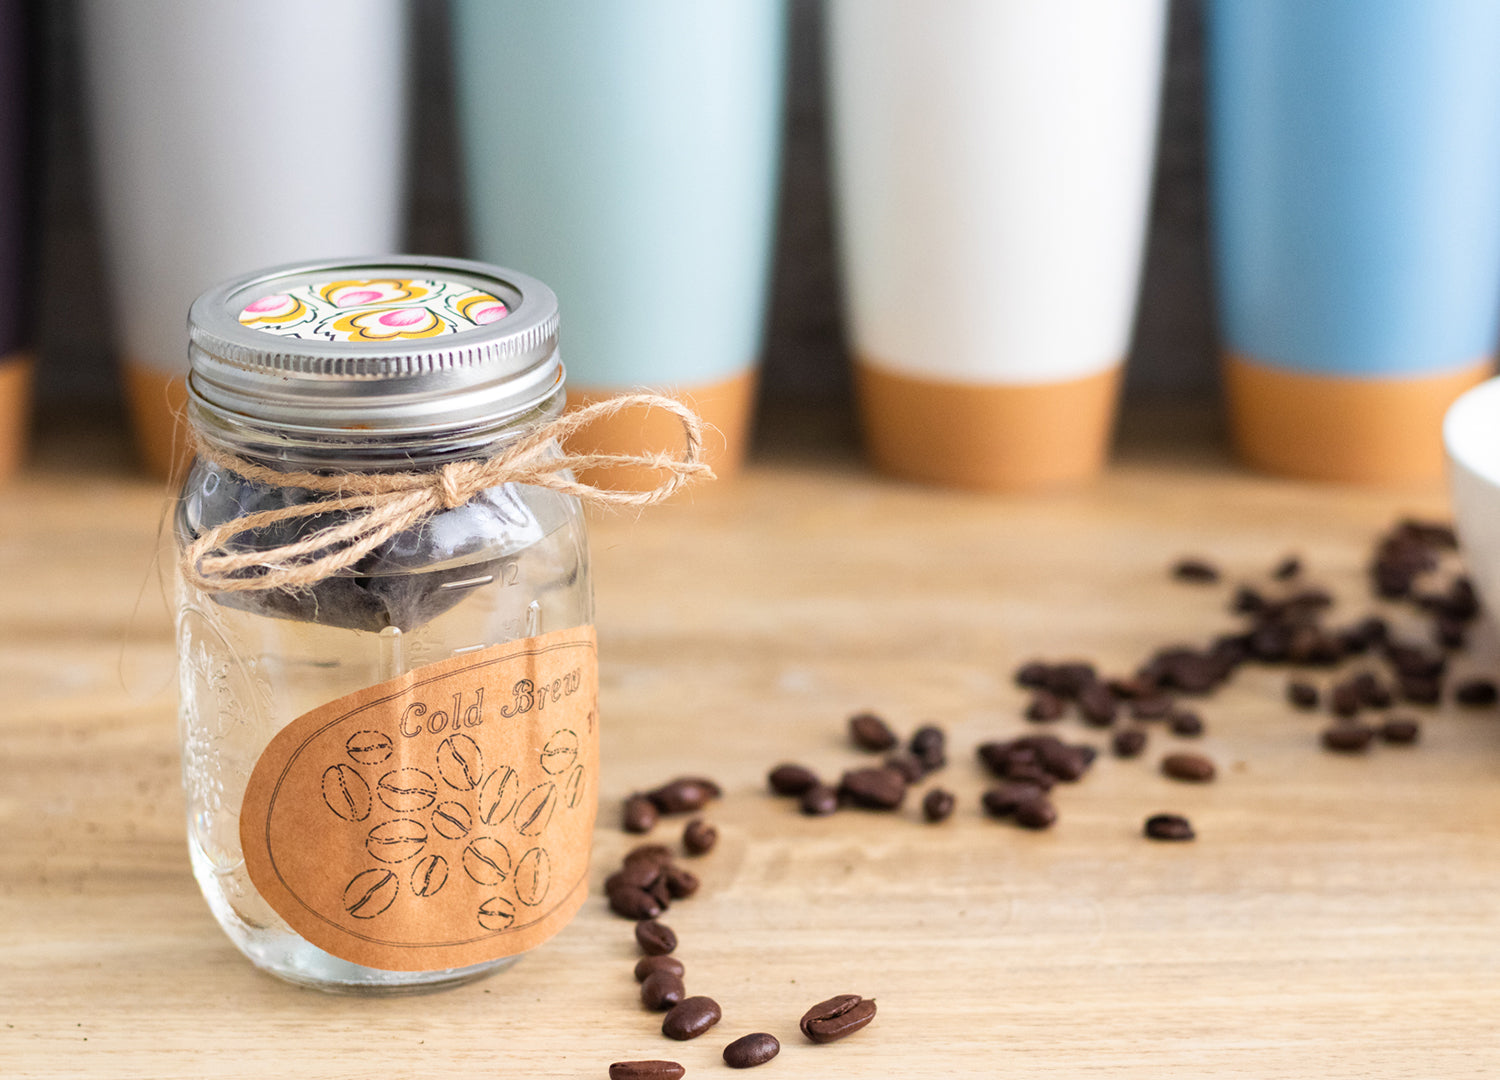 Place the mason jar lid or cover with plastic wrap and store in a cool room or in the fridge